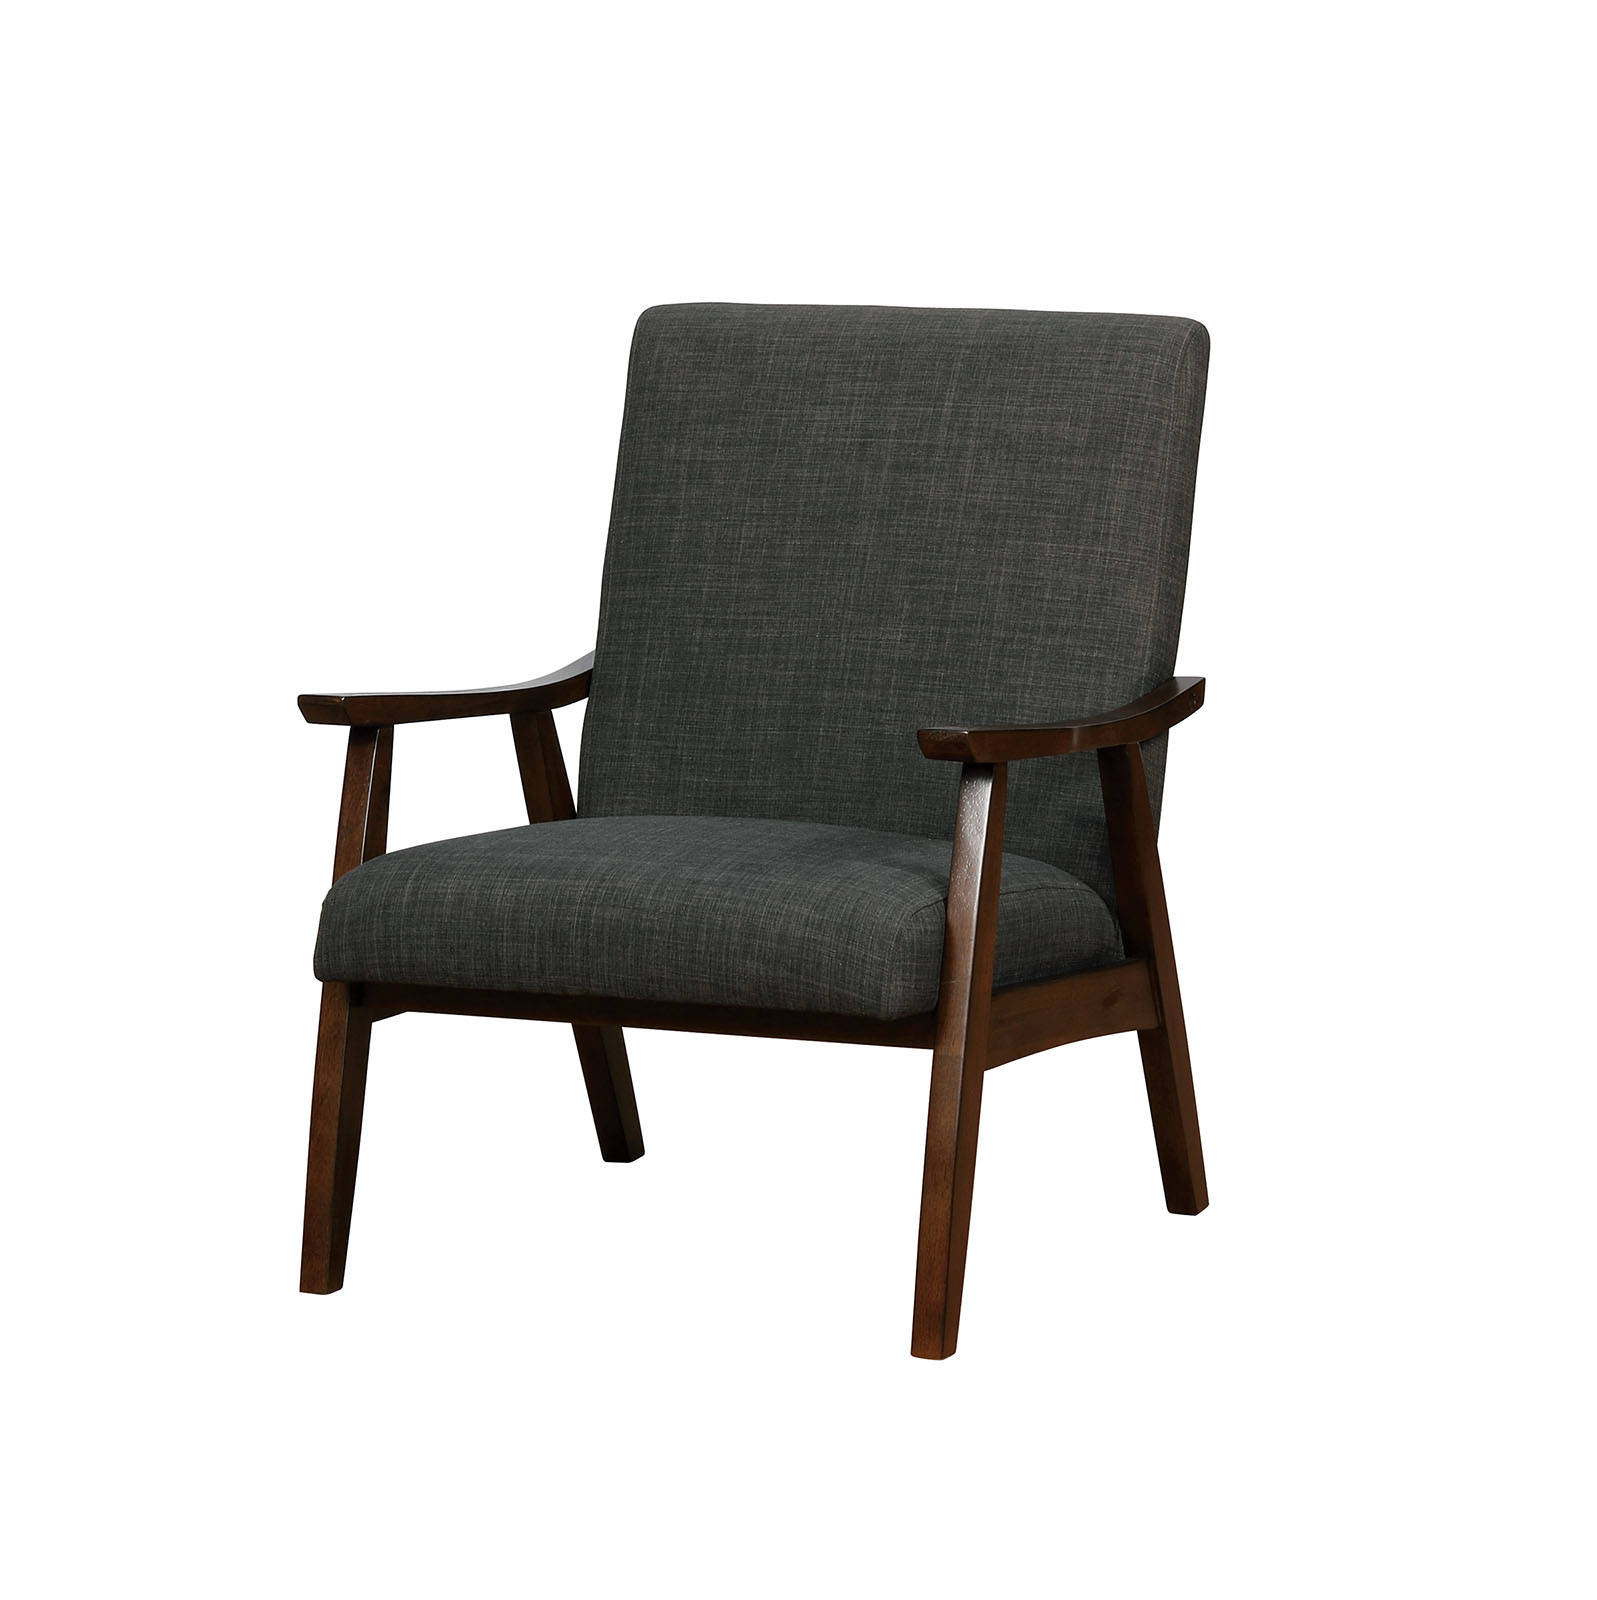 Ideas About Accent Chair Made By American Furniture